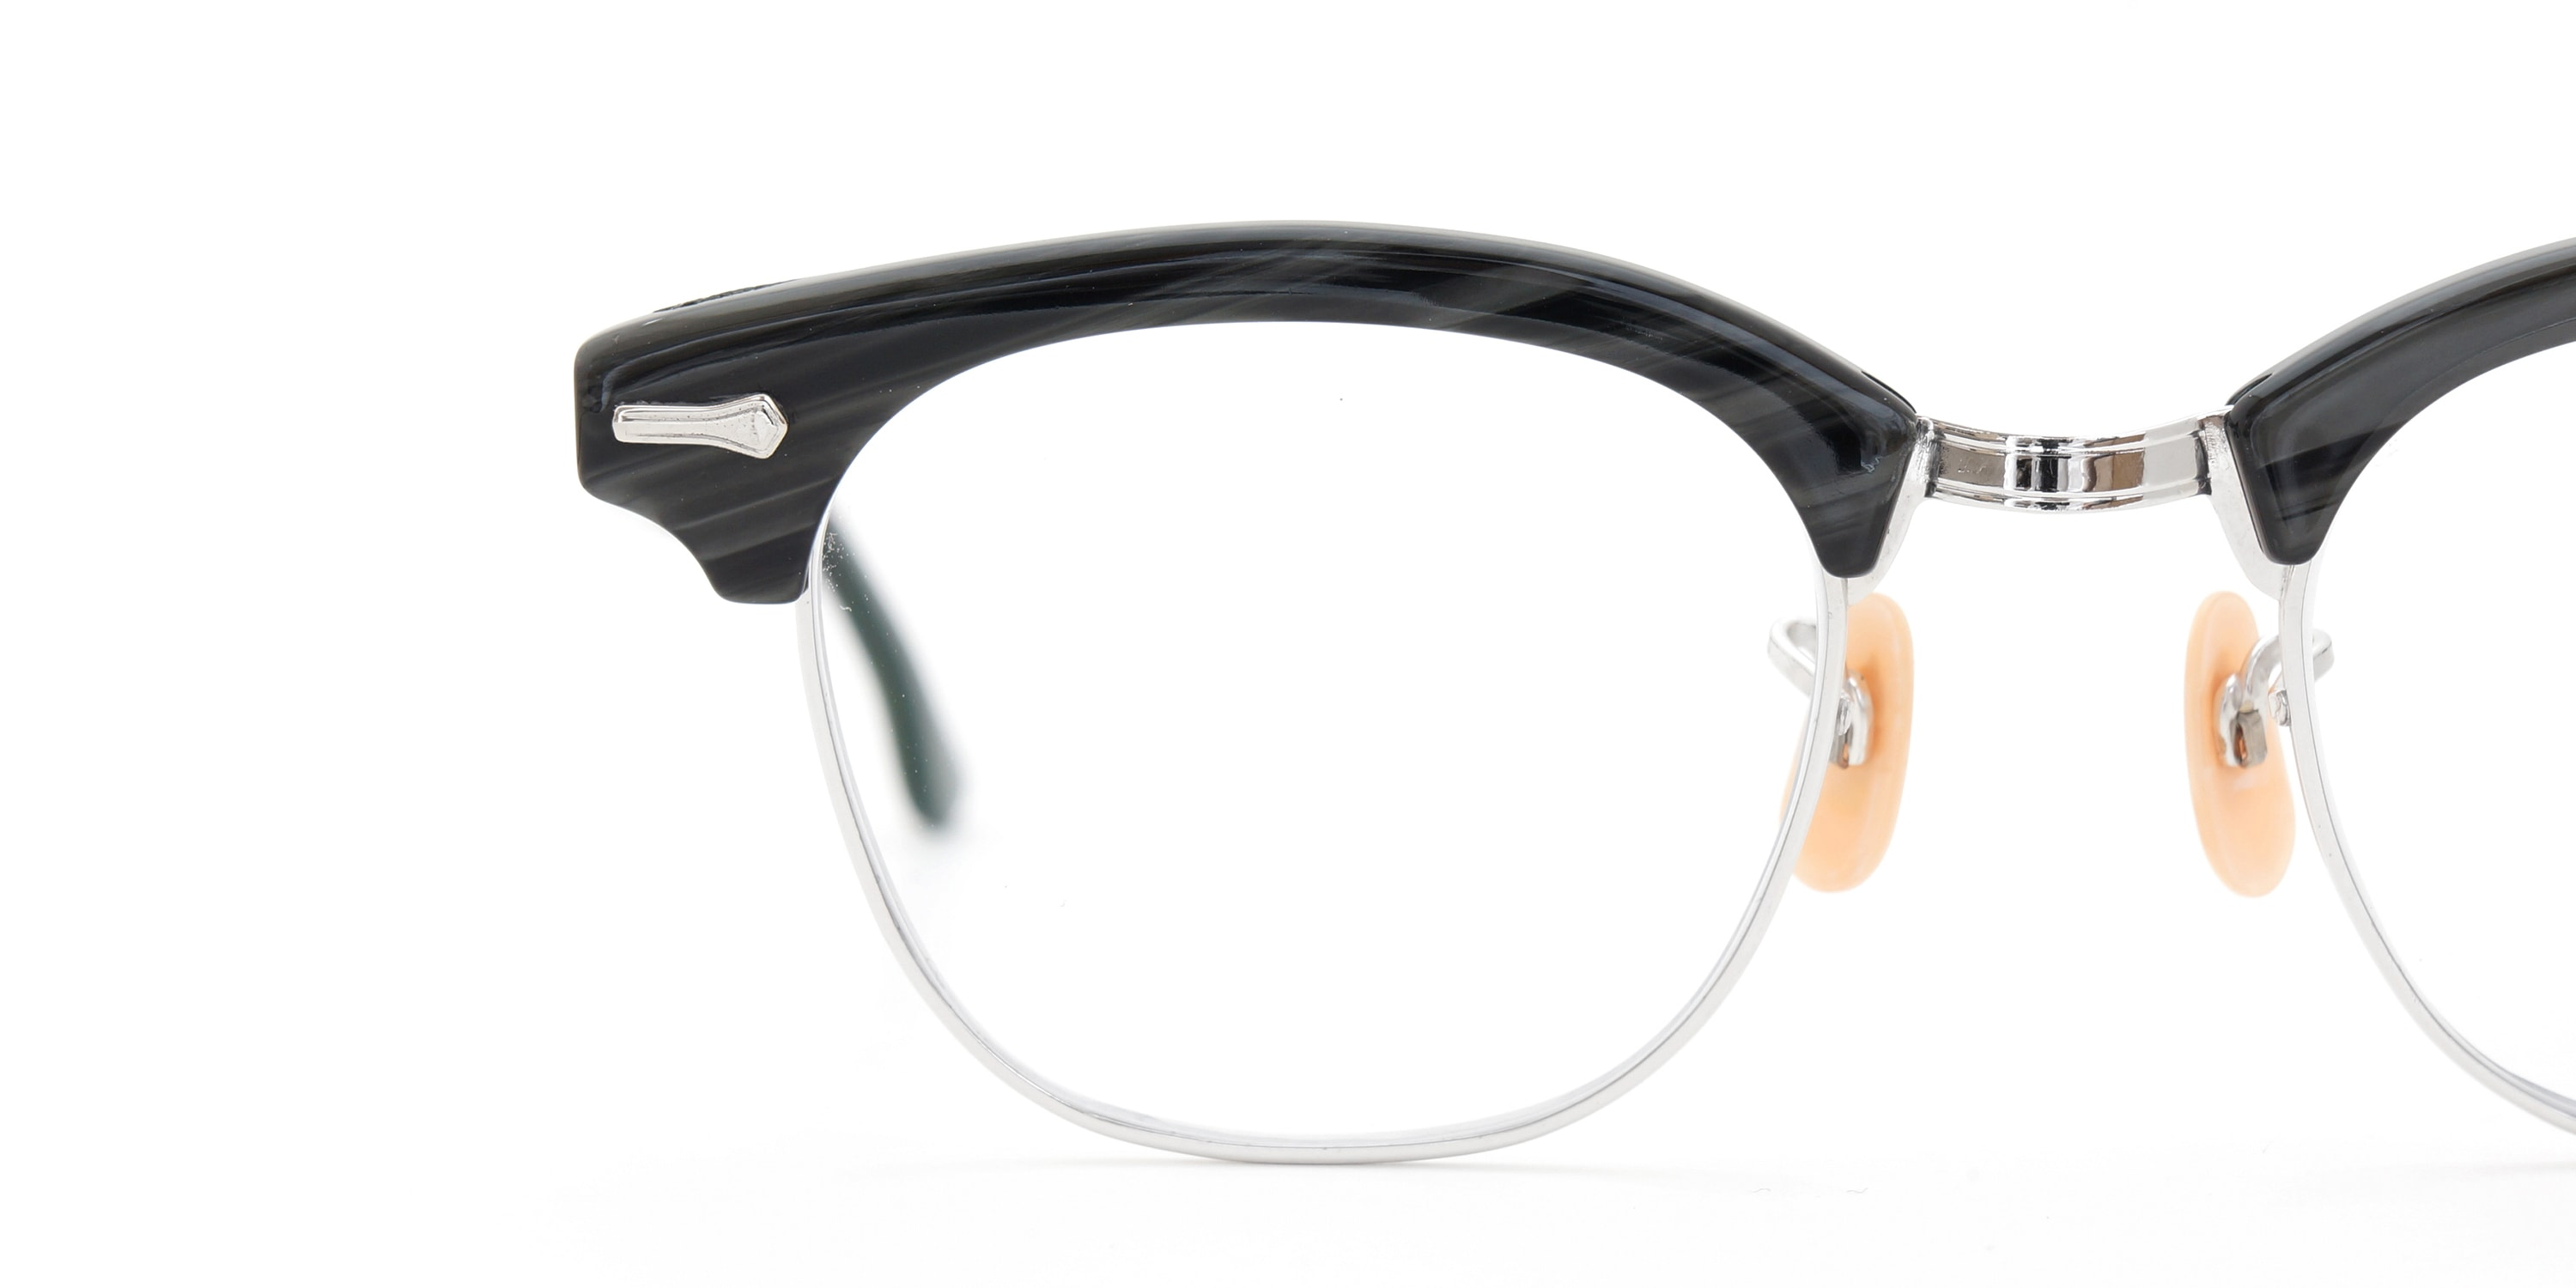 The Spectacle メガネ 1950s-1960s SHURON RONSIR Black-Stone WG 1/10 12KGF 46/20 イメージ16